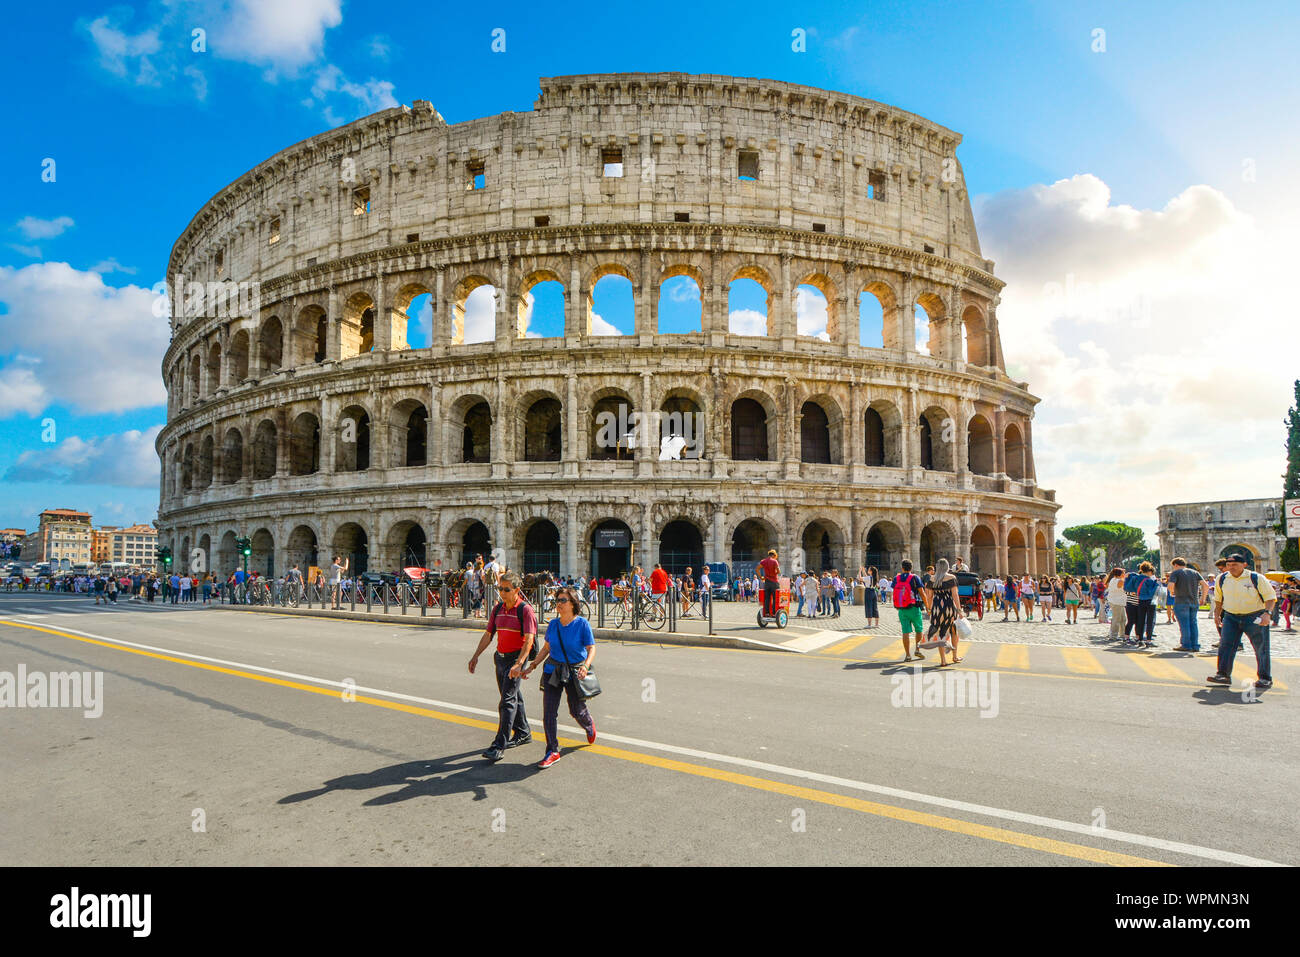 The ancient arena, the Colosseum of Rome in Italy on a summer day with tourists walking across the Via dei Fori Imperiali Stock Photo